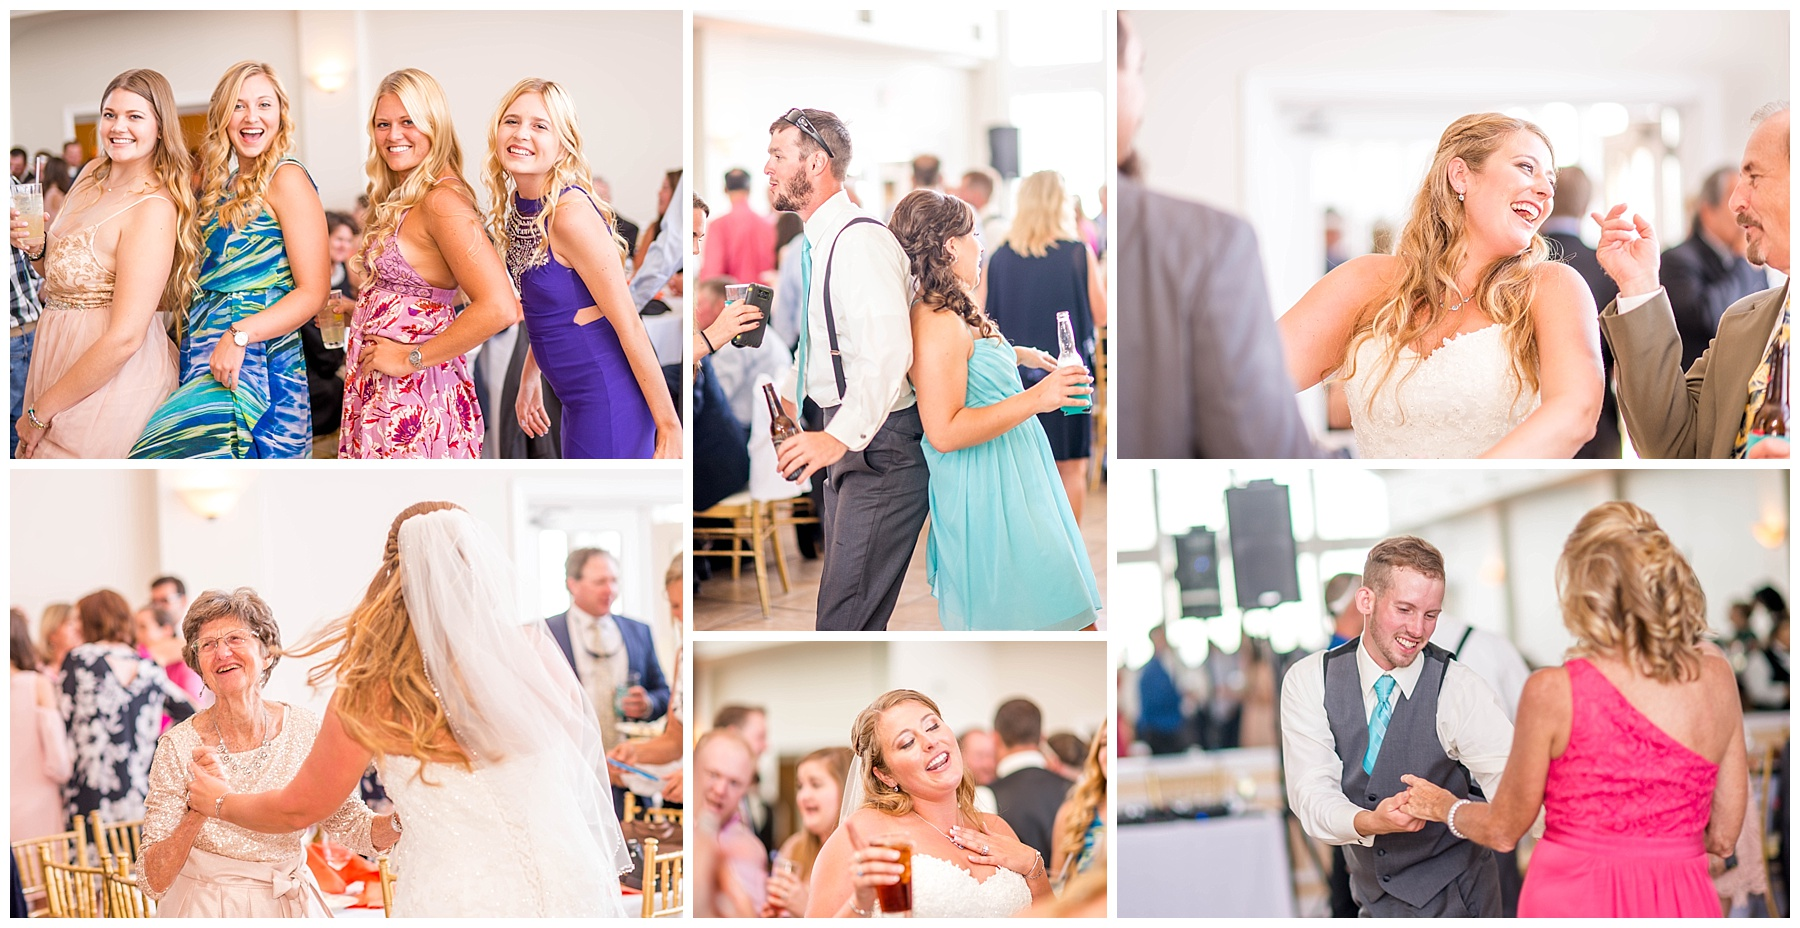 Celebrations at the Bay wedding